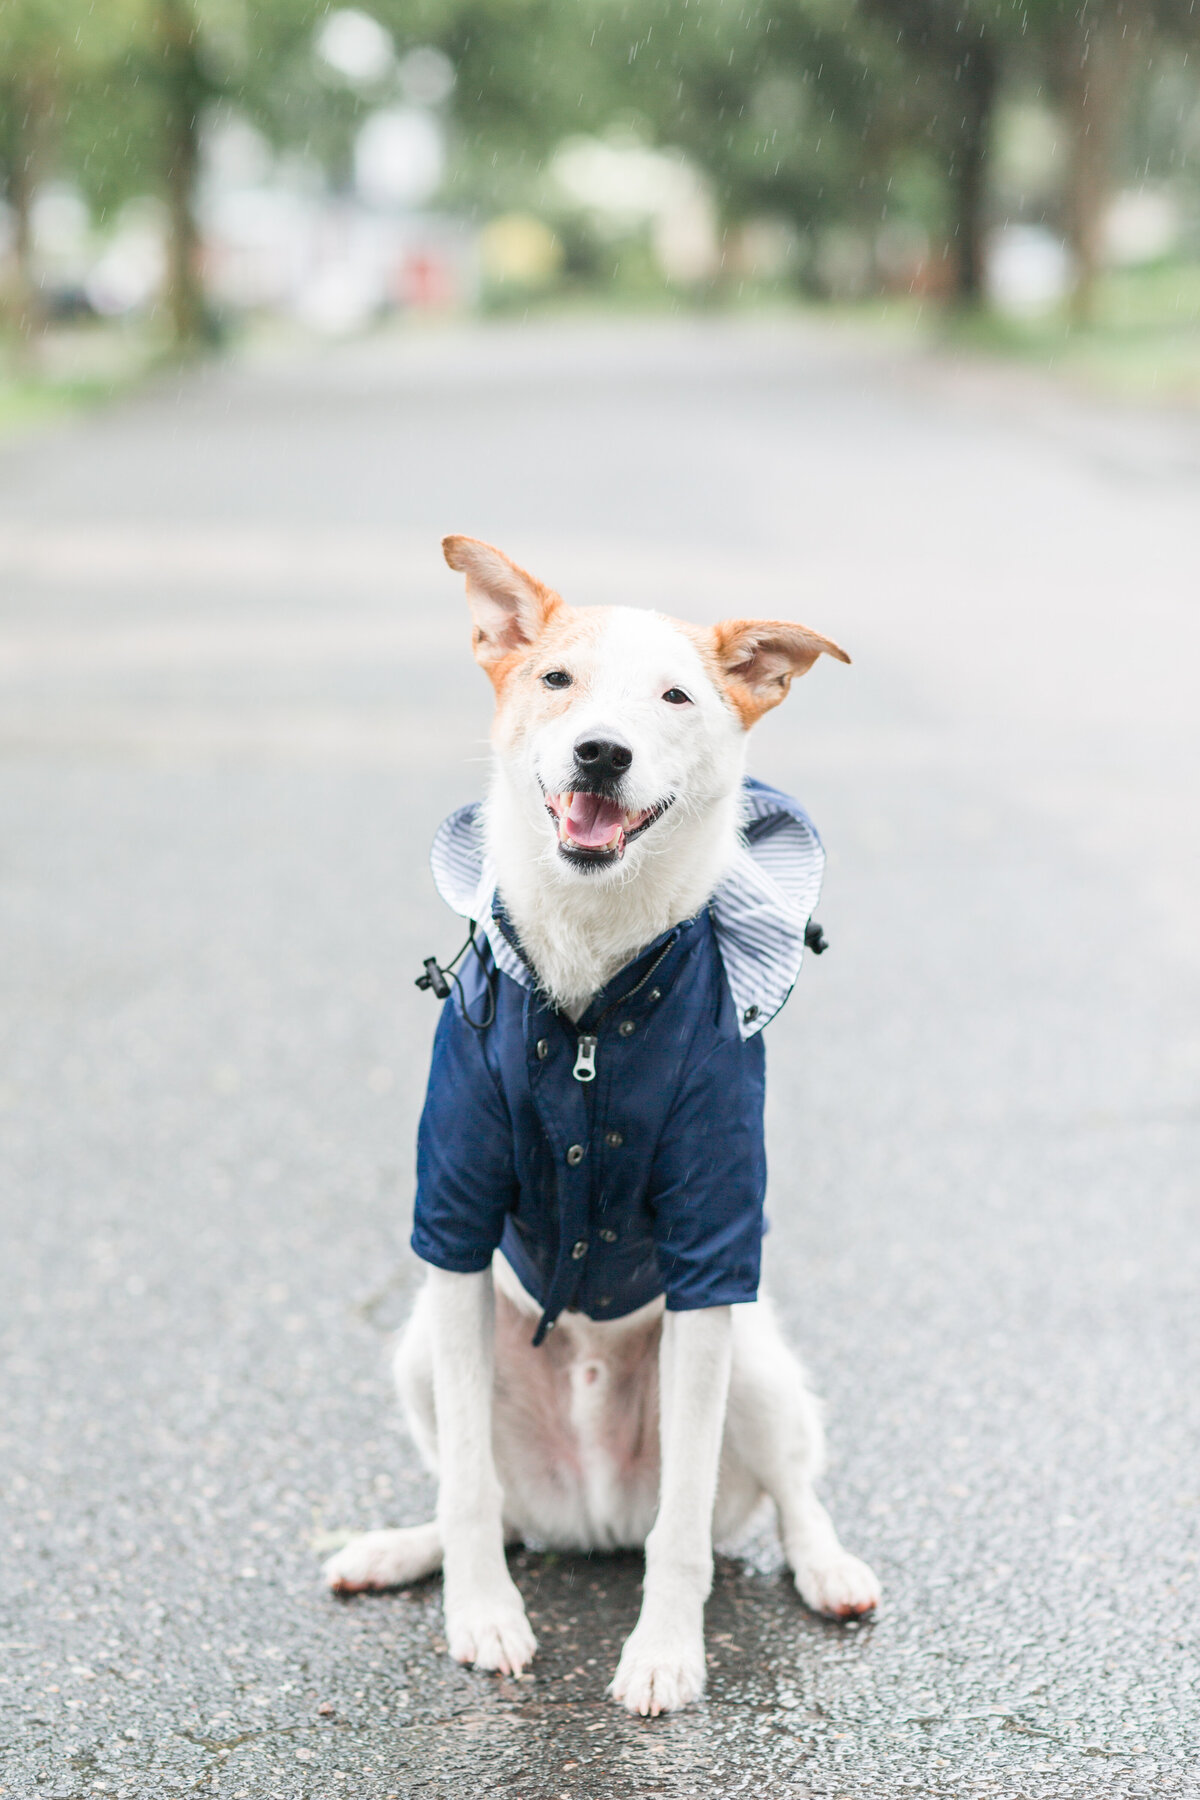 Rescue dog wearing a rain jacket in Boston